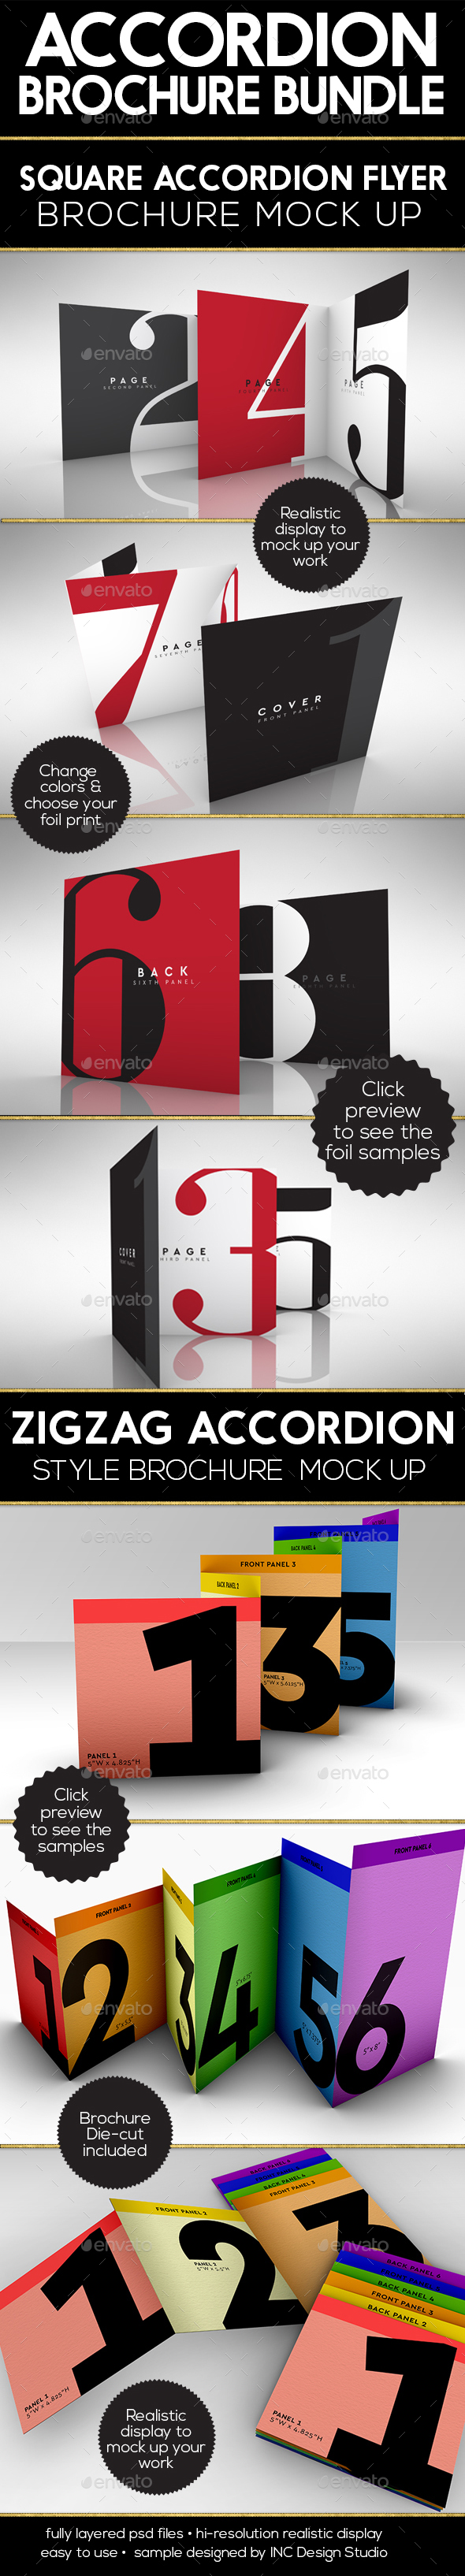 Accordion Brochure/Flyer Mock Up PSD Bundle  Template • Only available here ➝ http://graphicriver.net/item/accordion-brochureflyer-mock-up-bundle/16541254?ref=pxcr